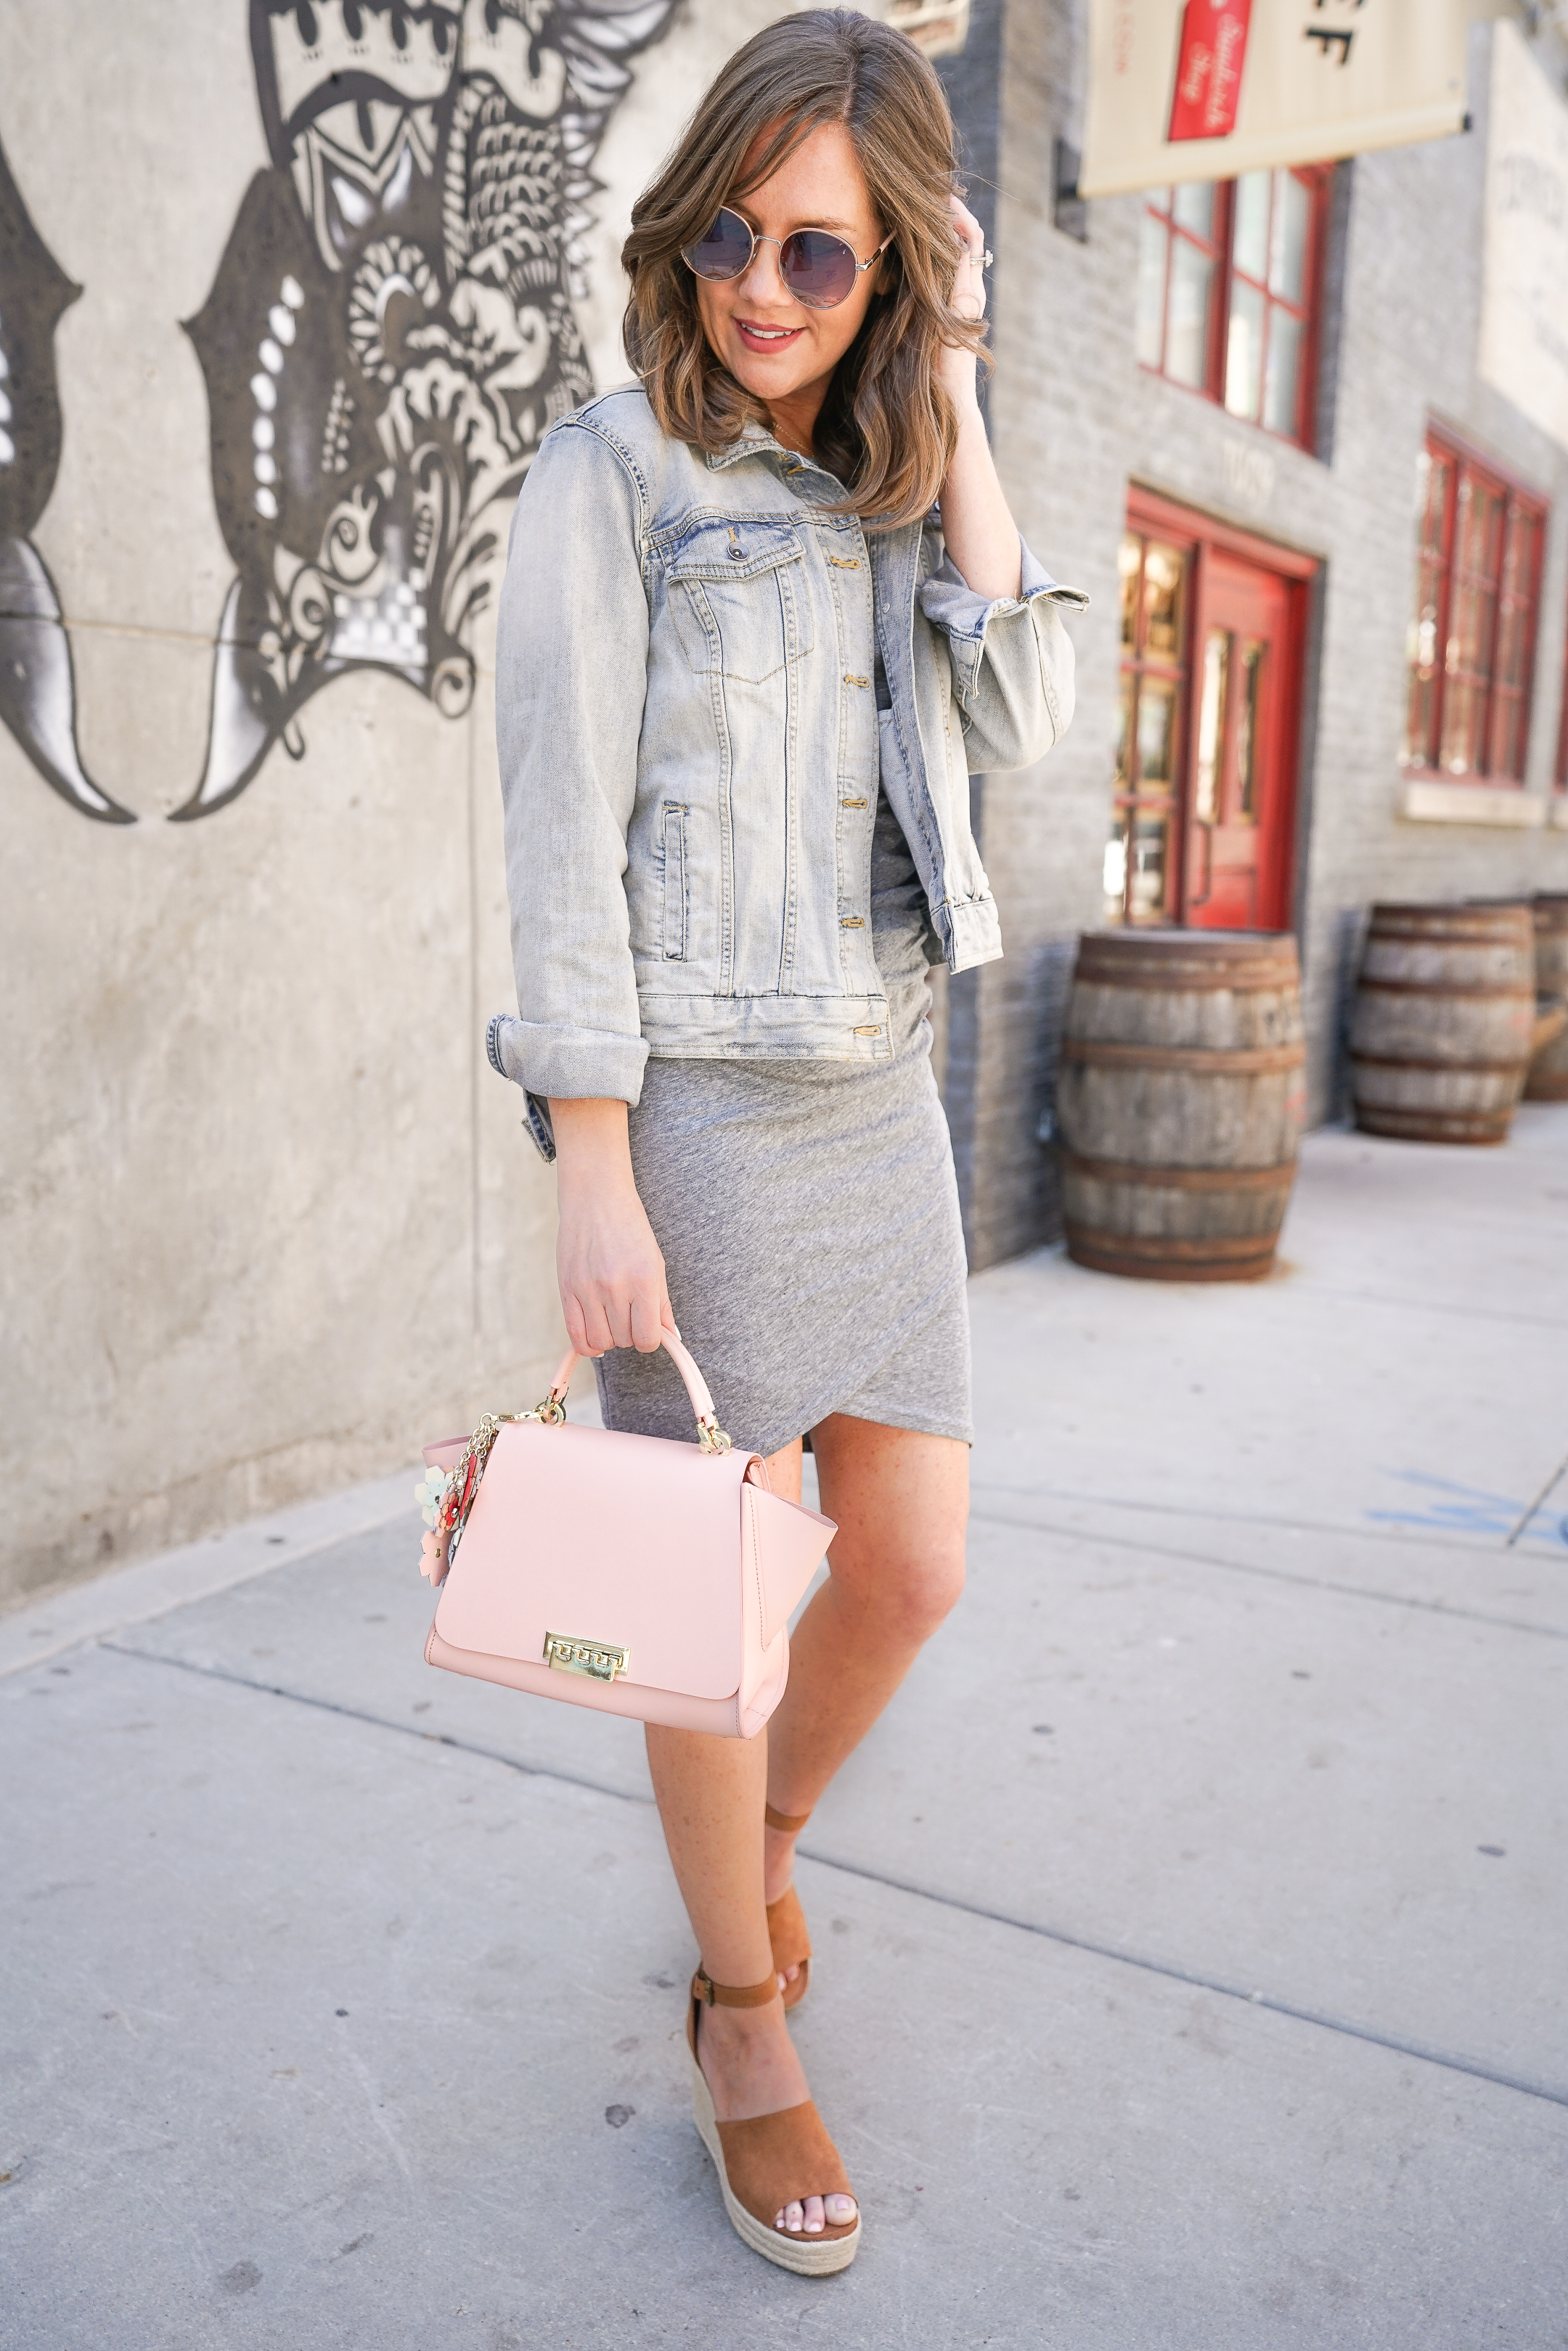 wedge-sandal-outfit-espadrille-wedges-t-shirt-dress-jean-jacket-spring-bag-wedges